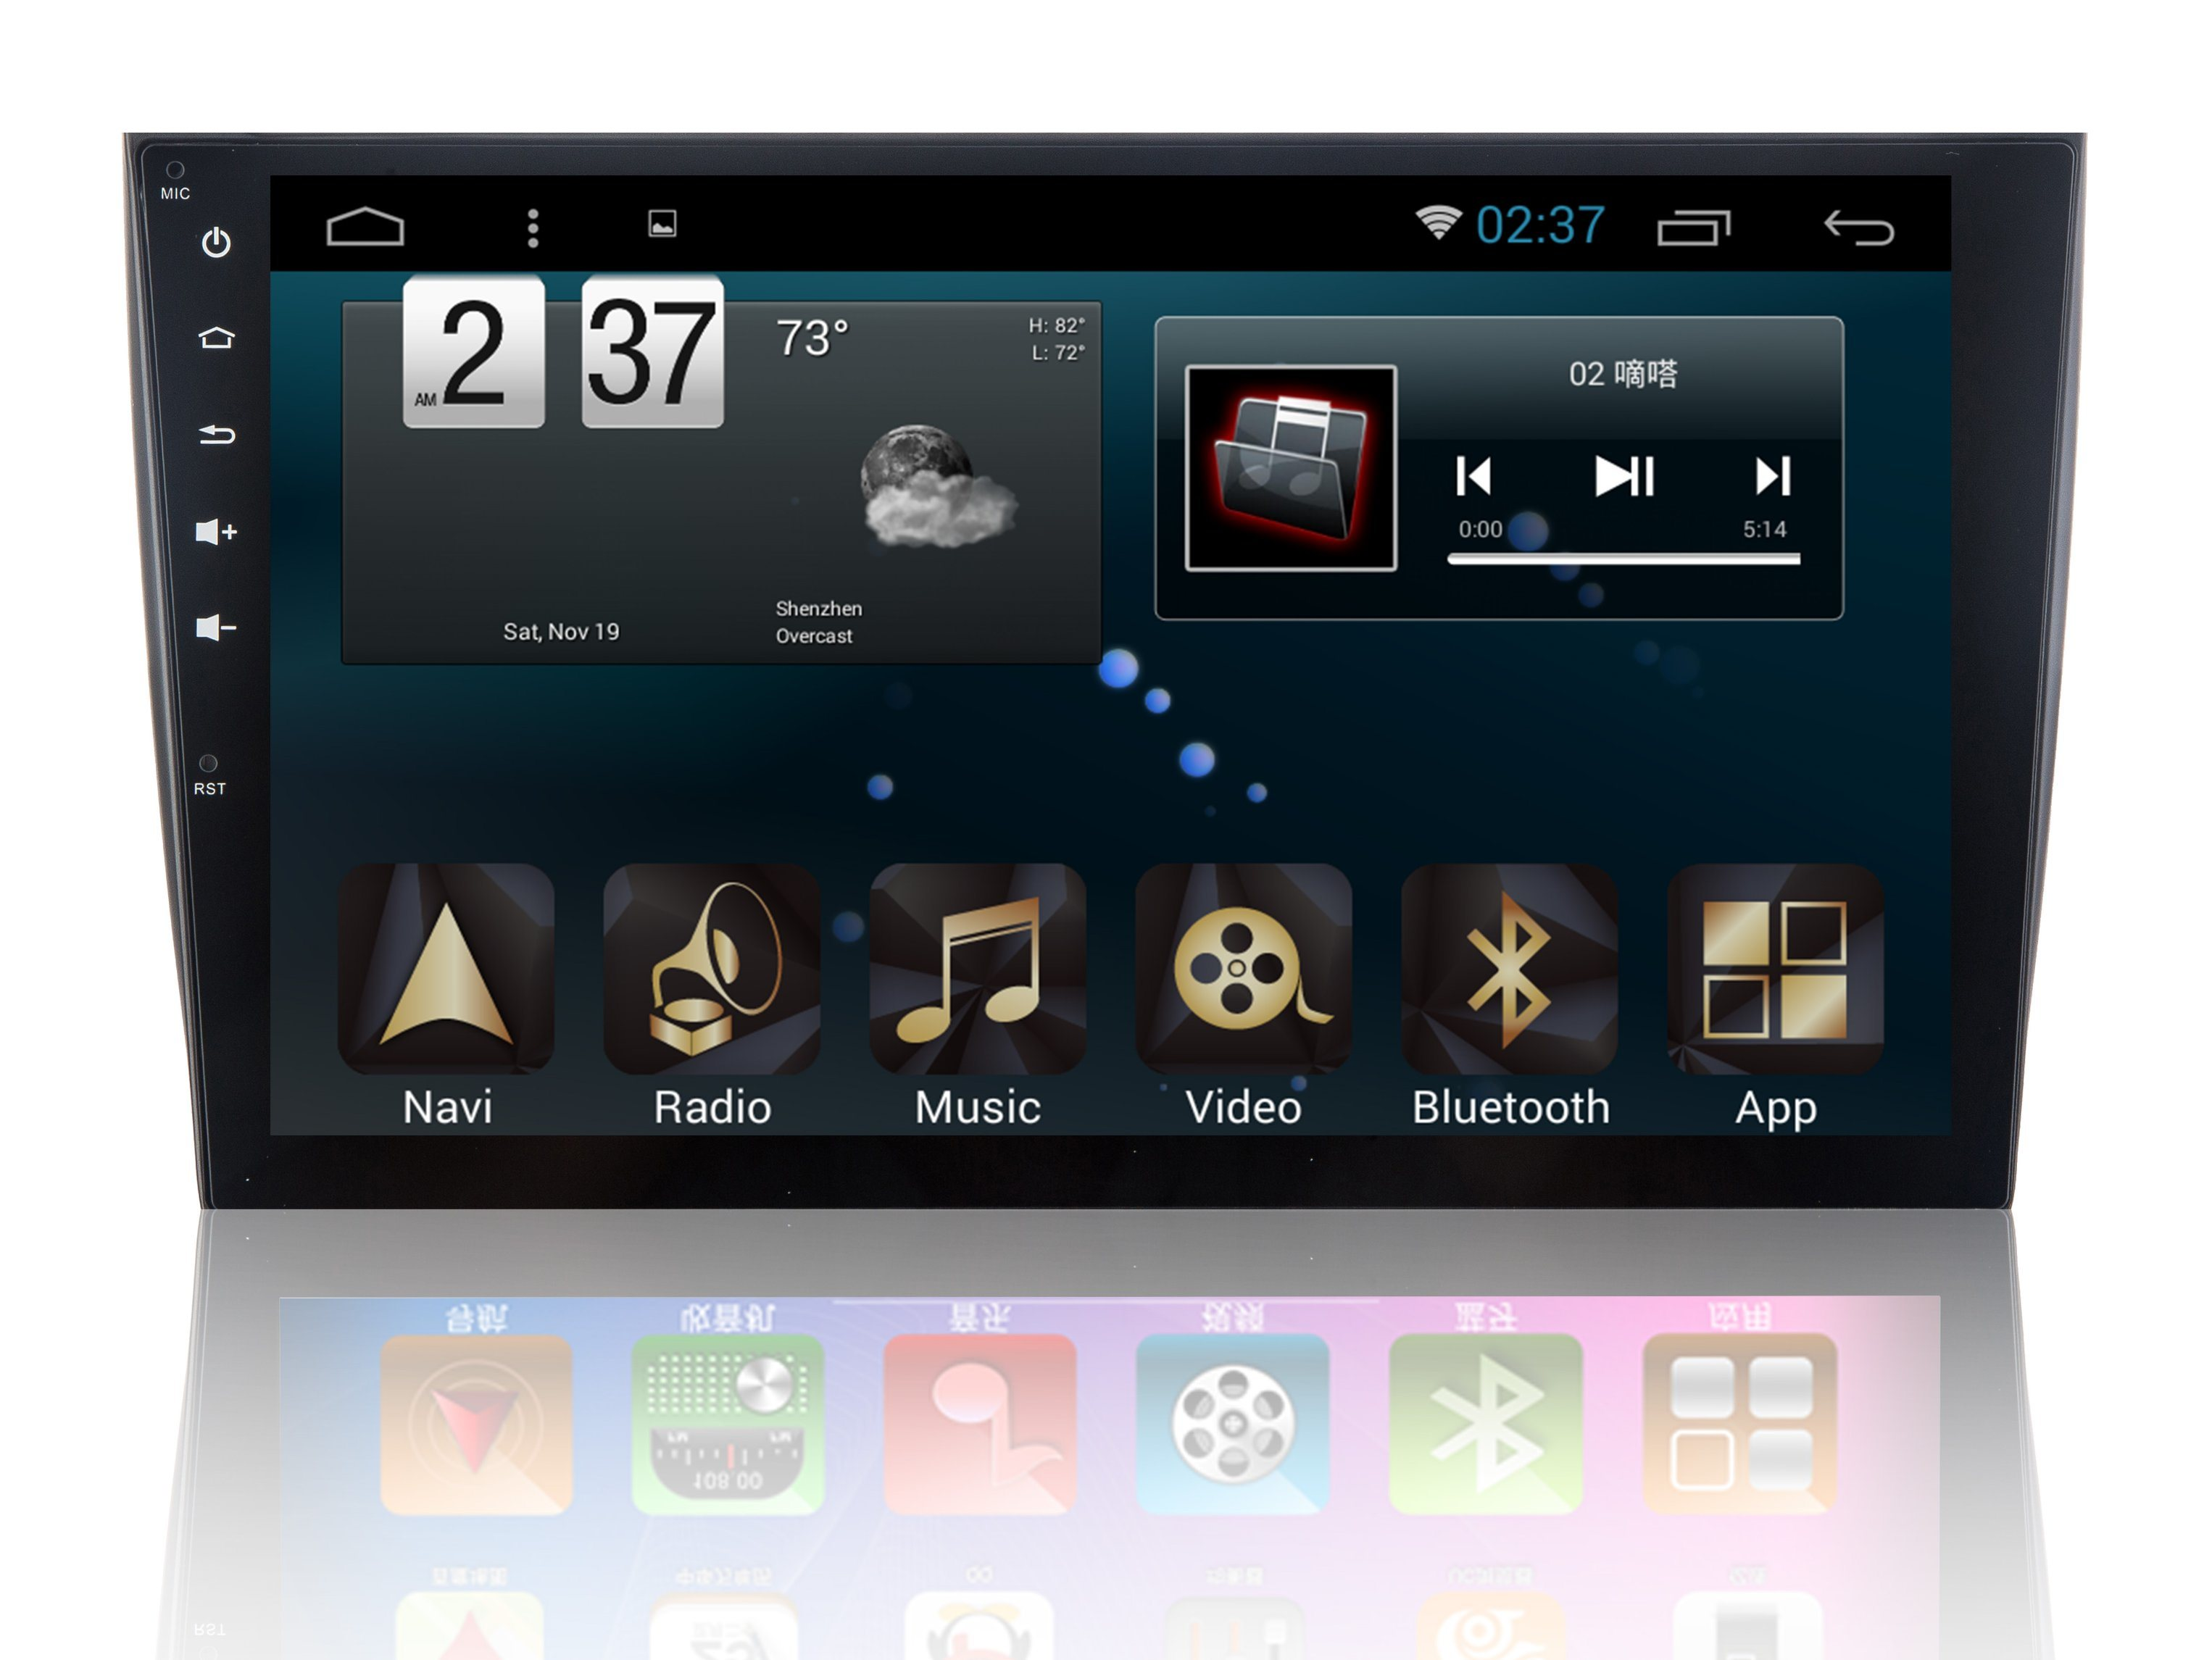 New Ui Android 6.0 System Car GPS for Volkswagen Polo with Car DVD Player and Navigation